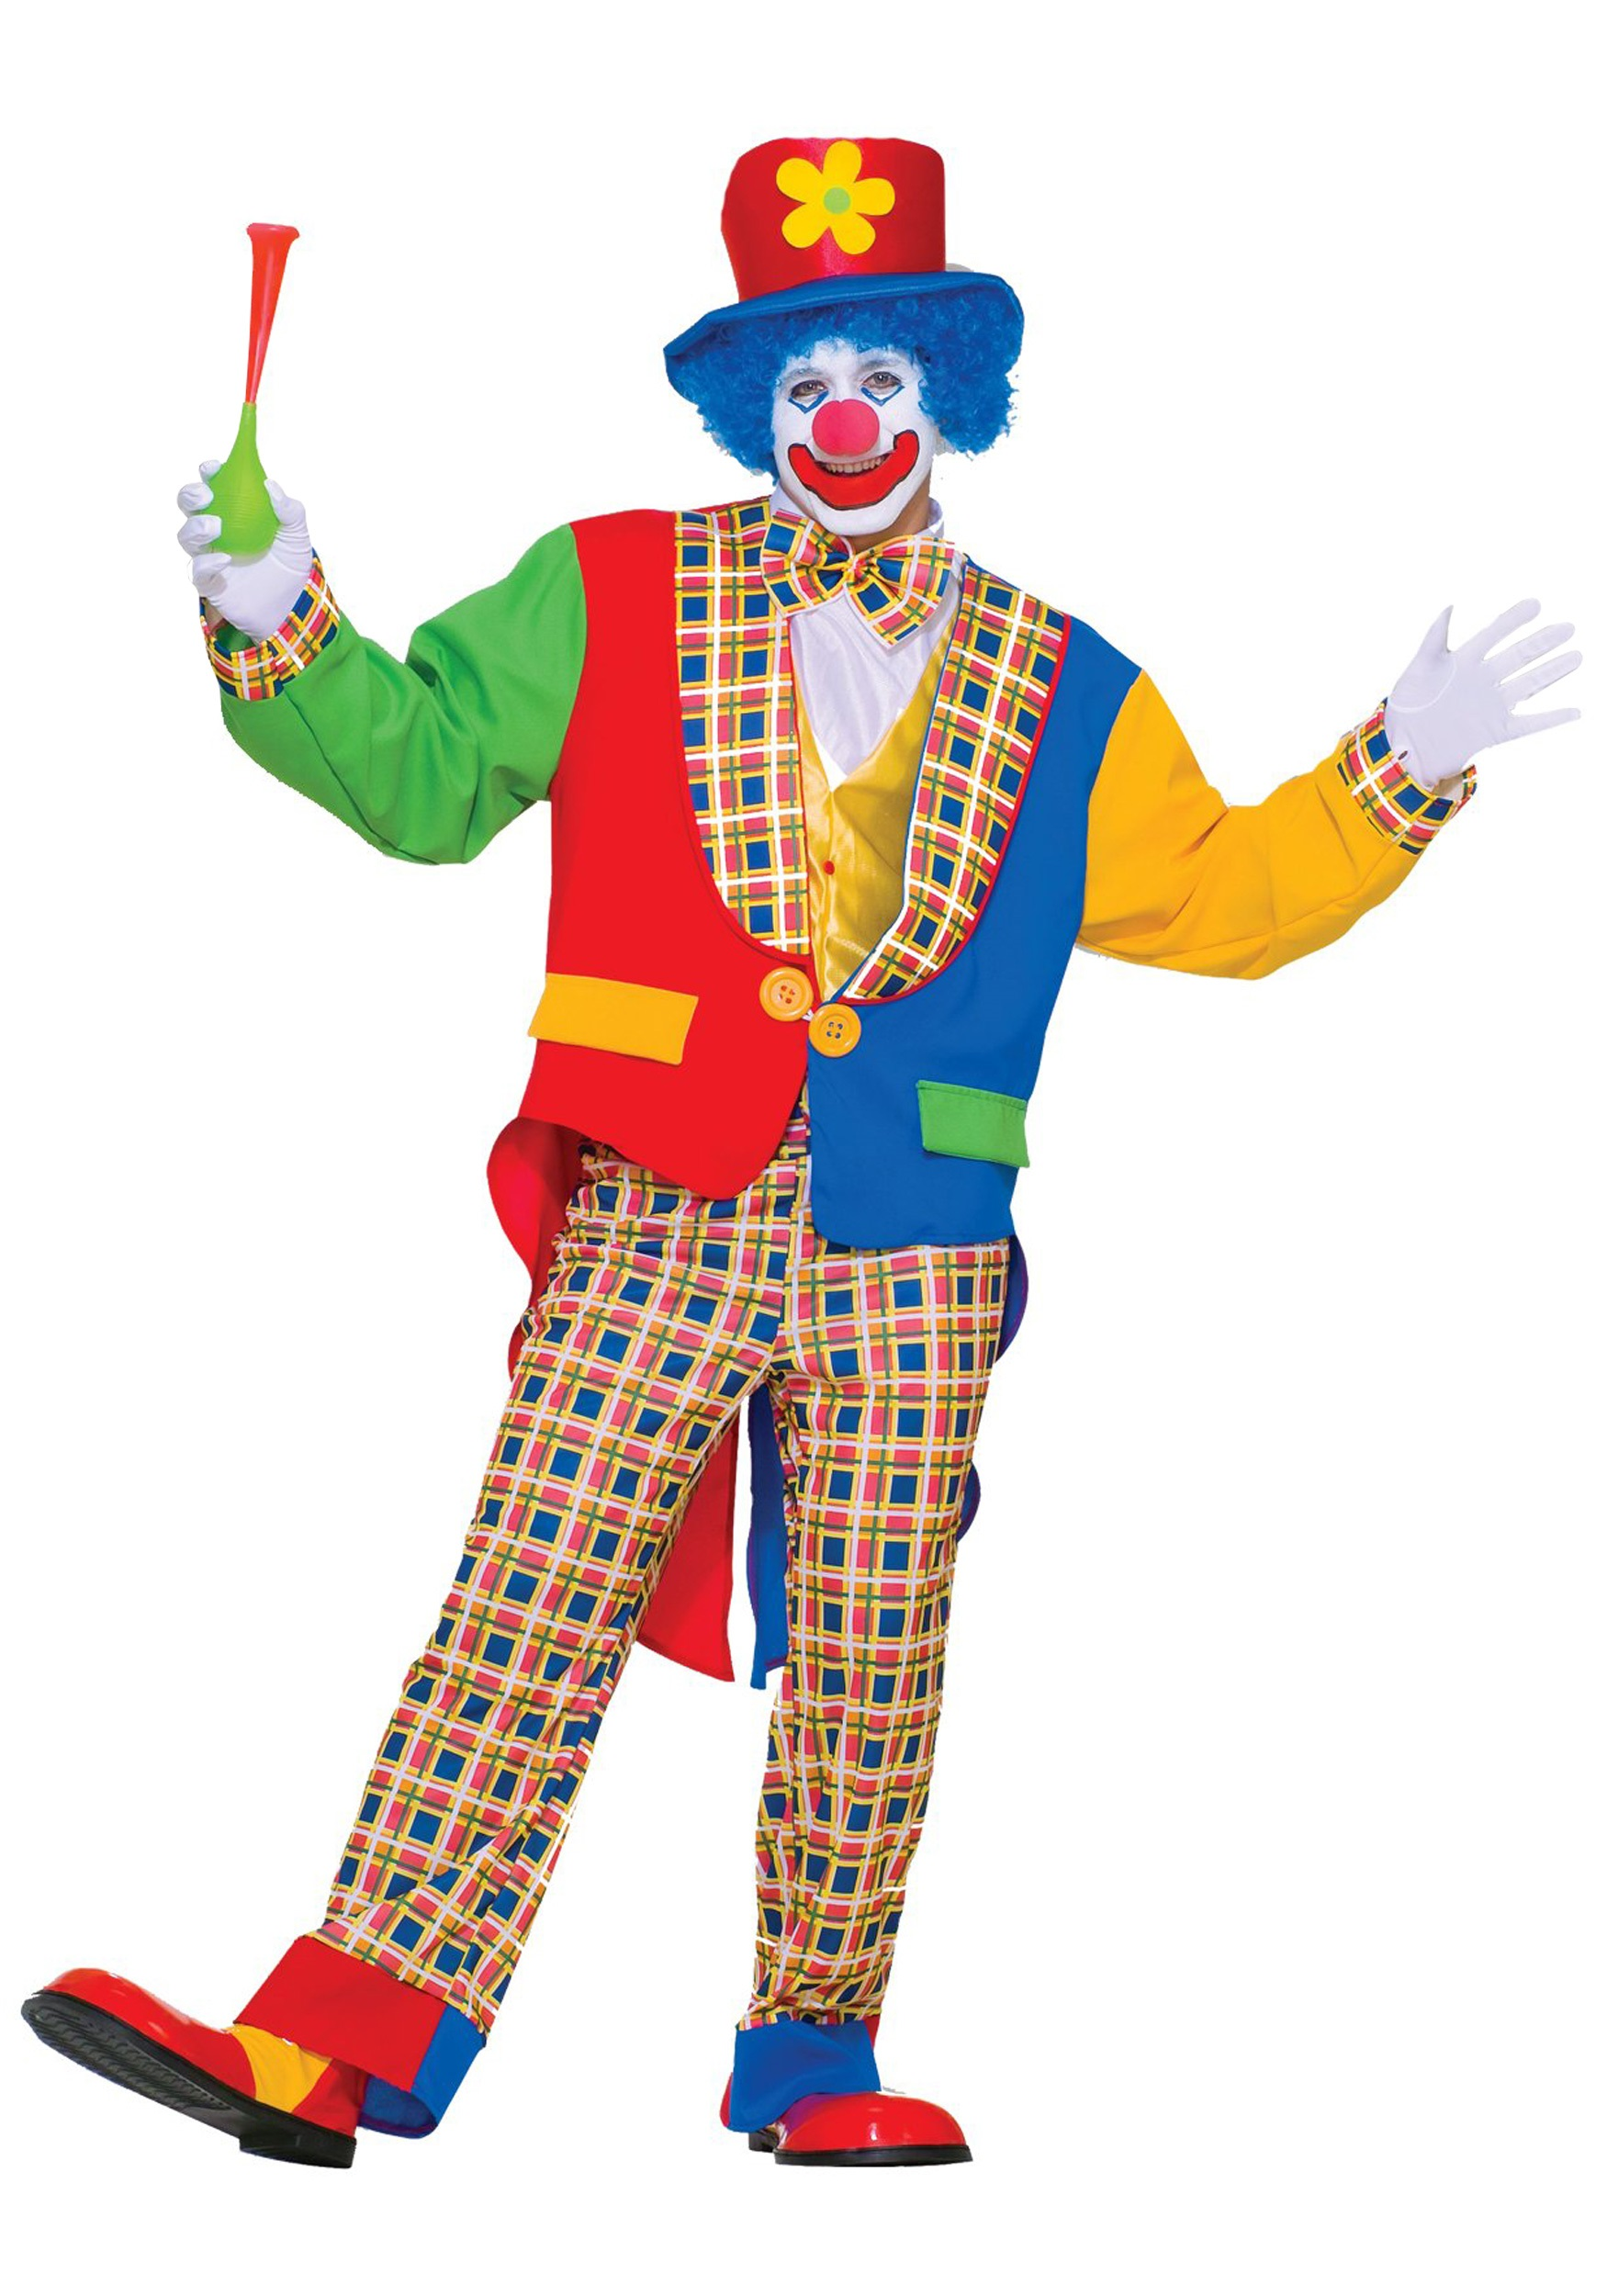 Clown Costumes - Adult, Kids Clown Halloween Costume